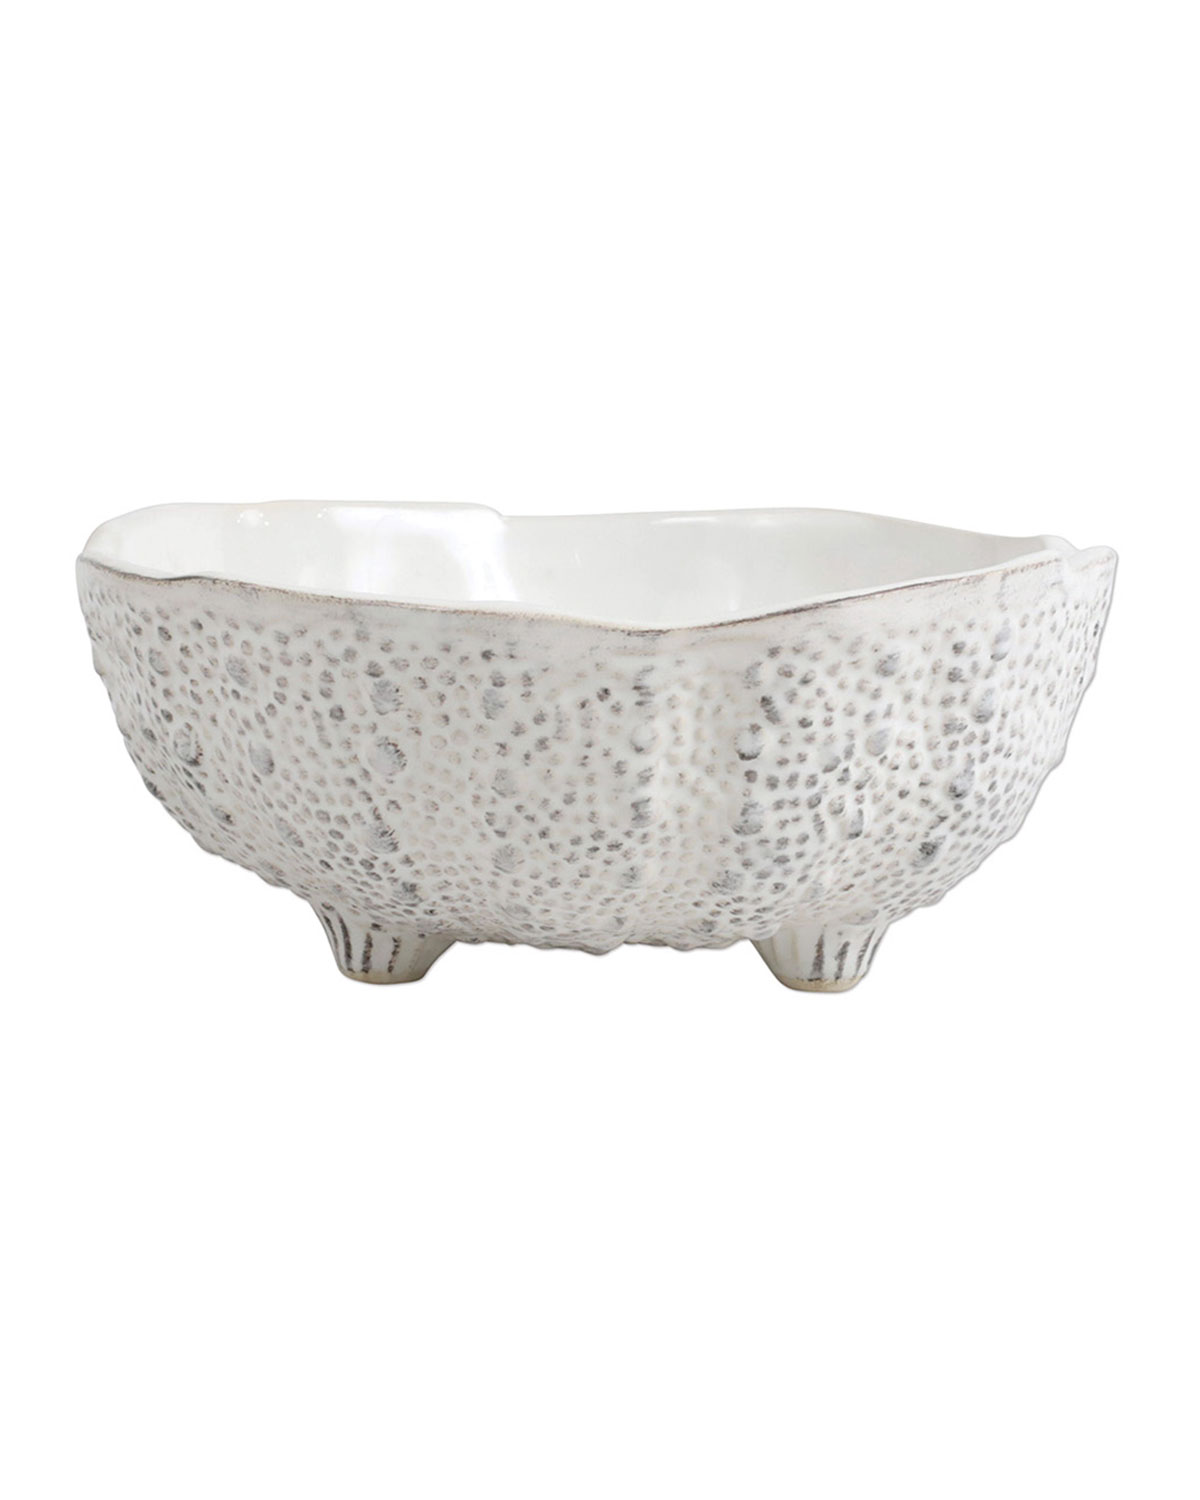 Vietri ACQUATICO WHITE SEA URCHIN SMALL BOWL